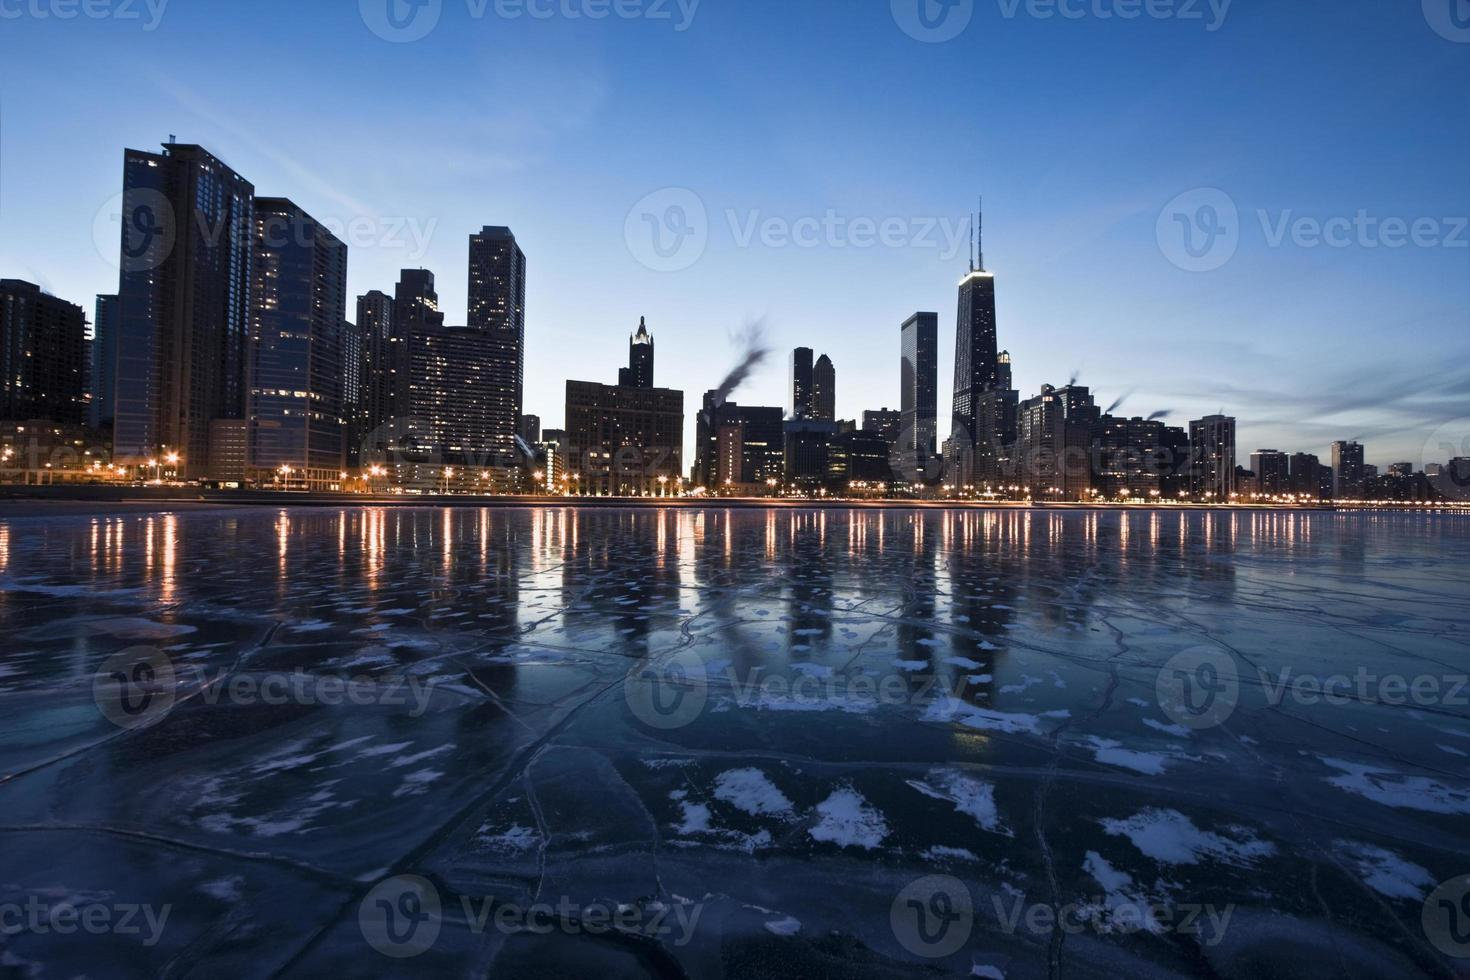 Evening in Chicago, Gold Coast photo